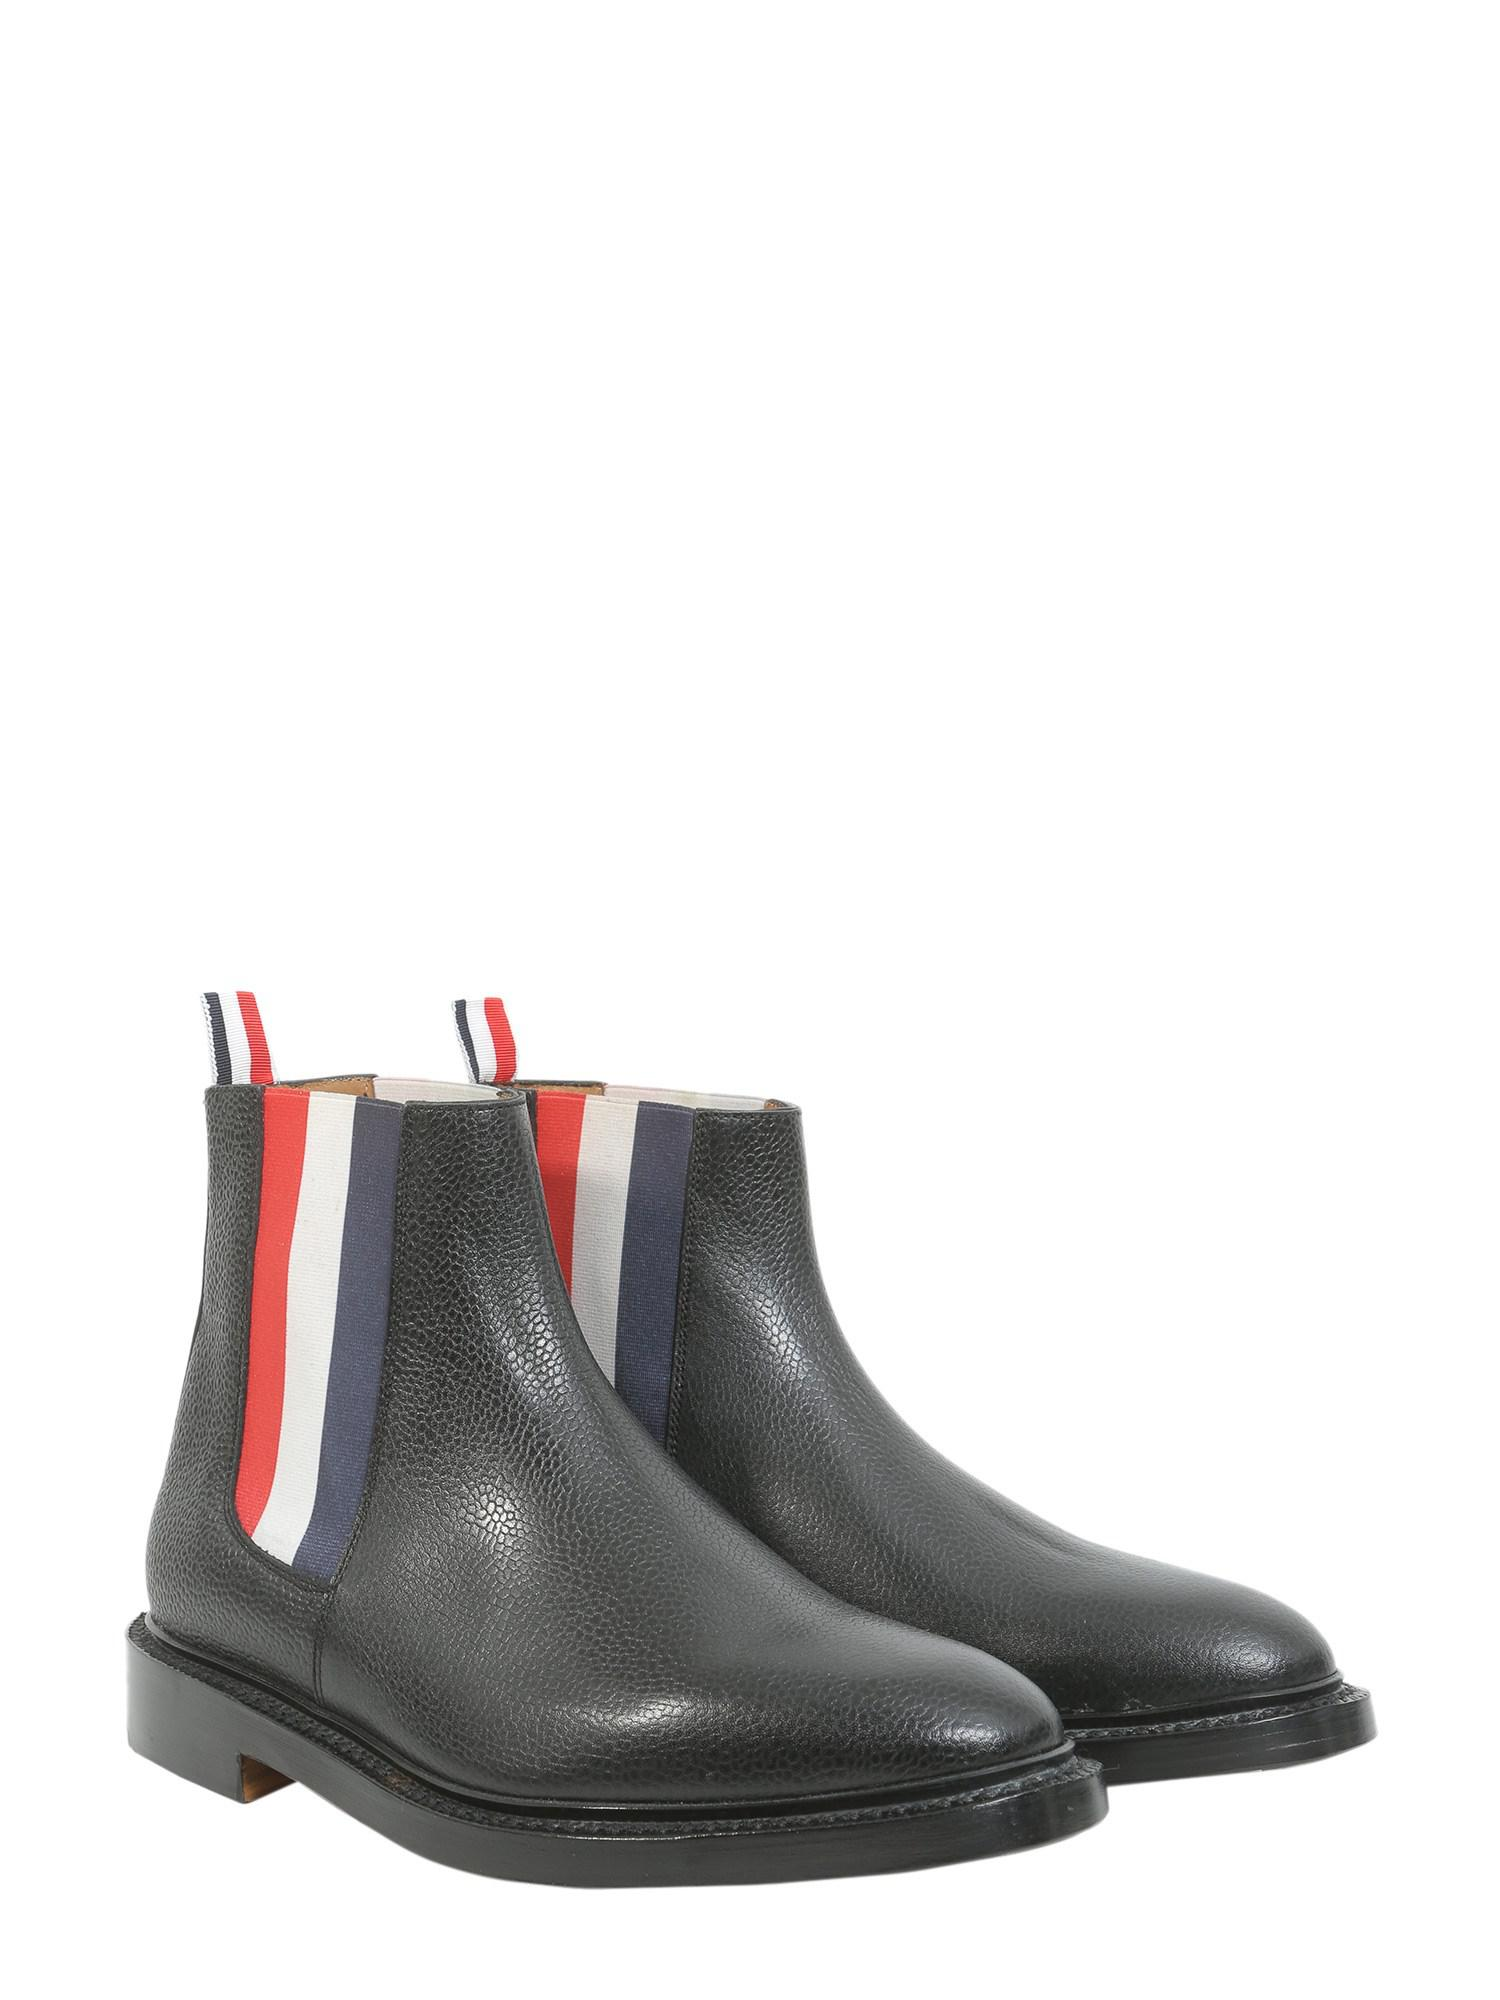 e02c6ead3eb51 ... Black Leather Chelsea Boots With Elasticated Logo for Men - Lyst. View  fullscreen